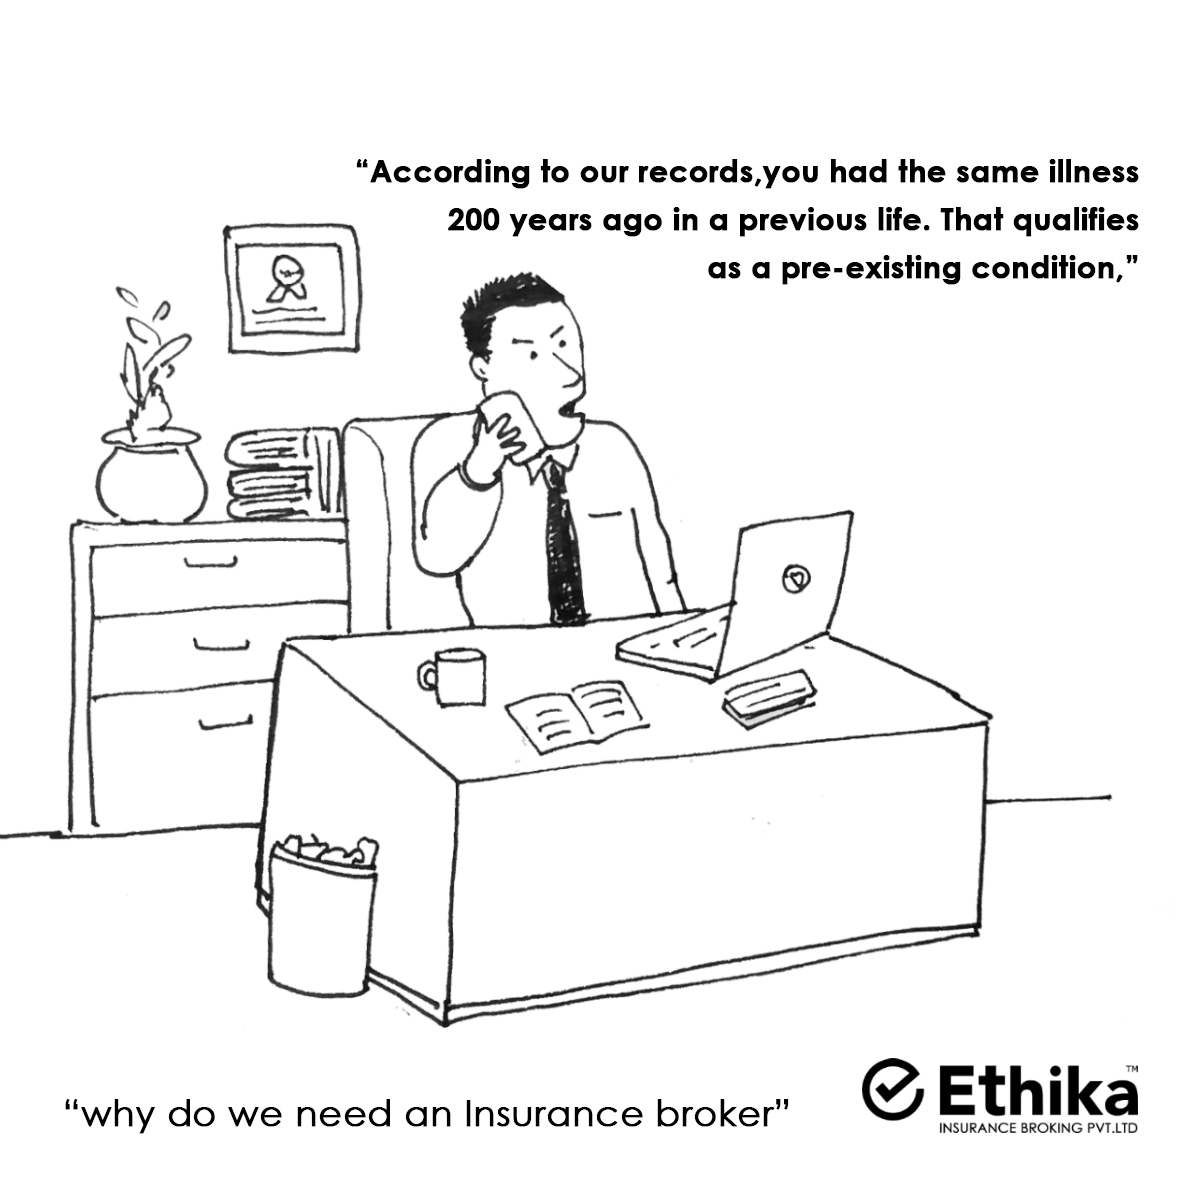 Why you need insurance broker - sketch graphic meme